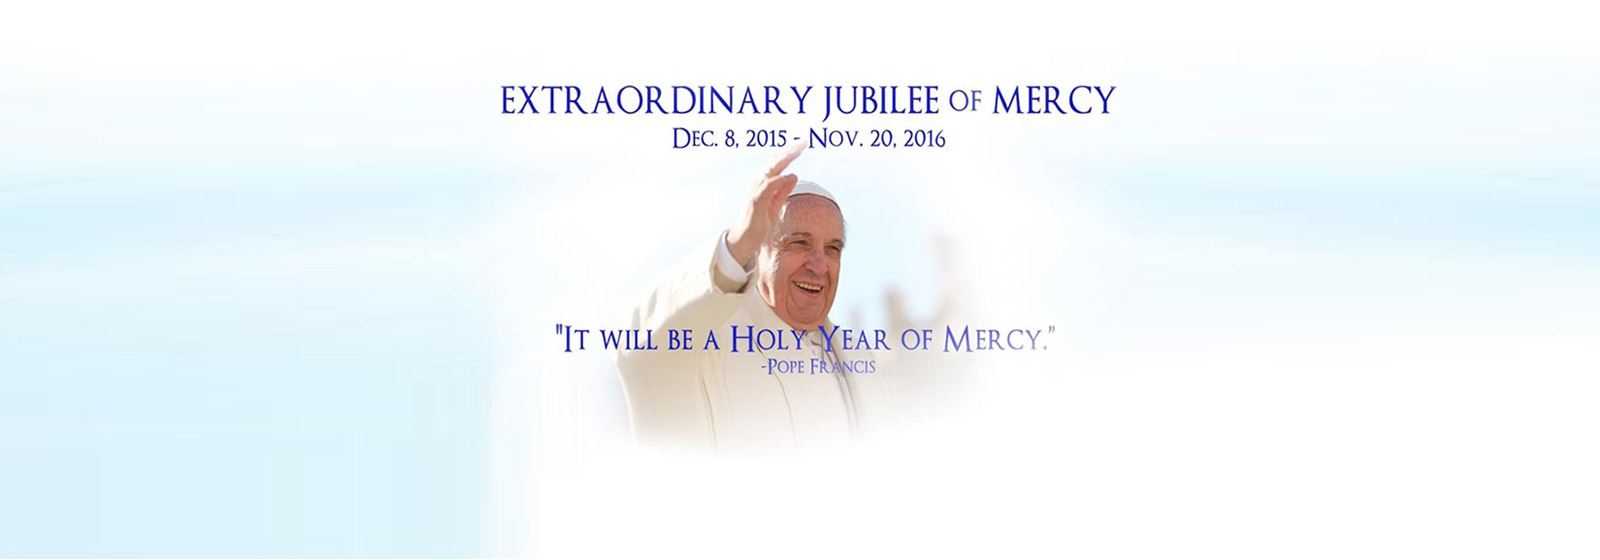 pope francis declares extraordinary jubilee of mercy 2016